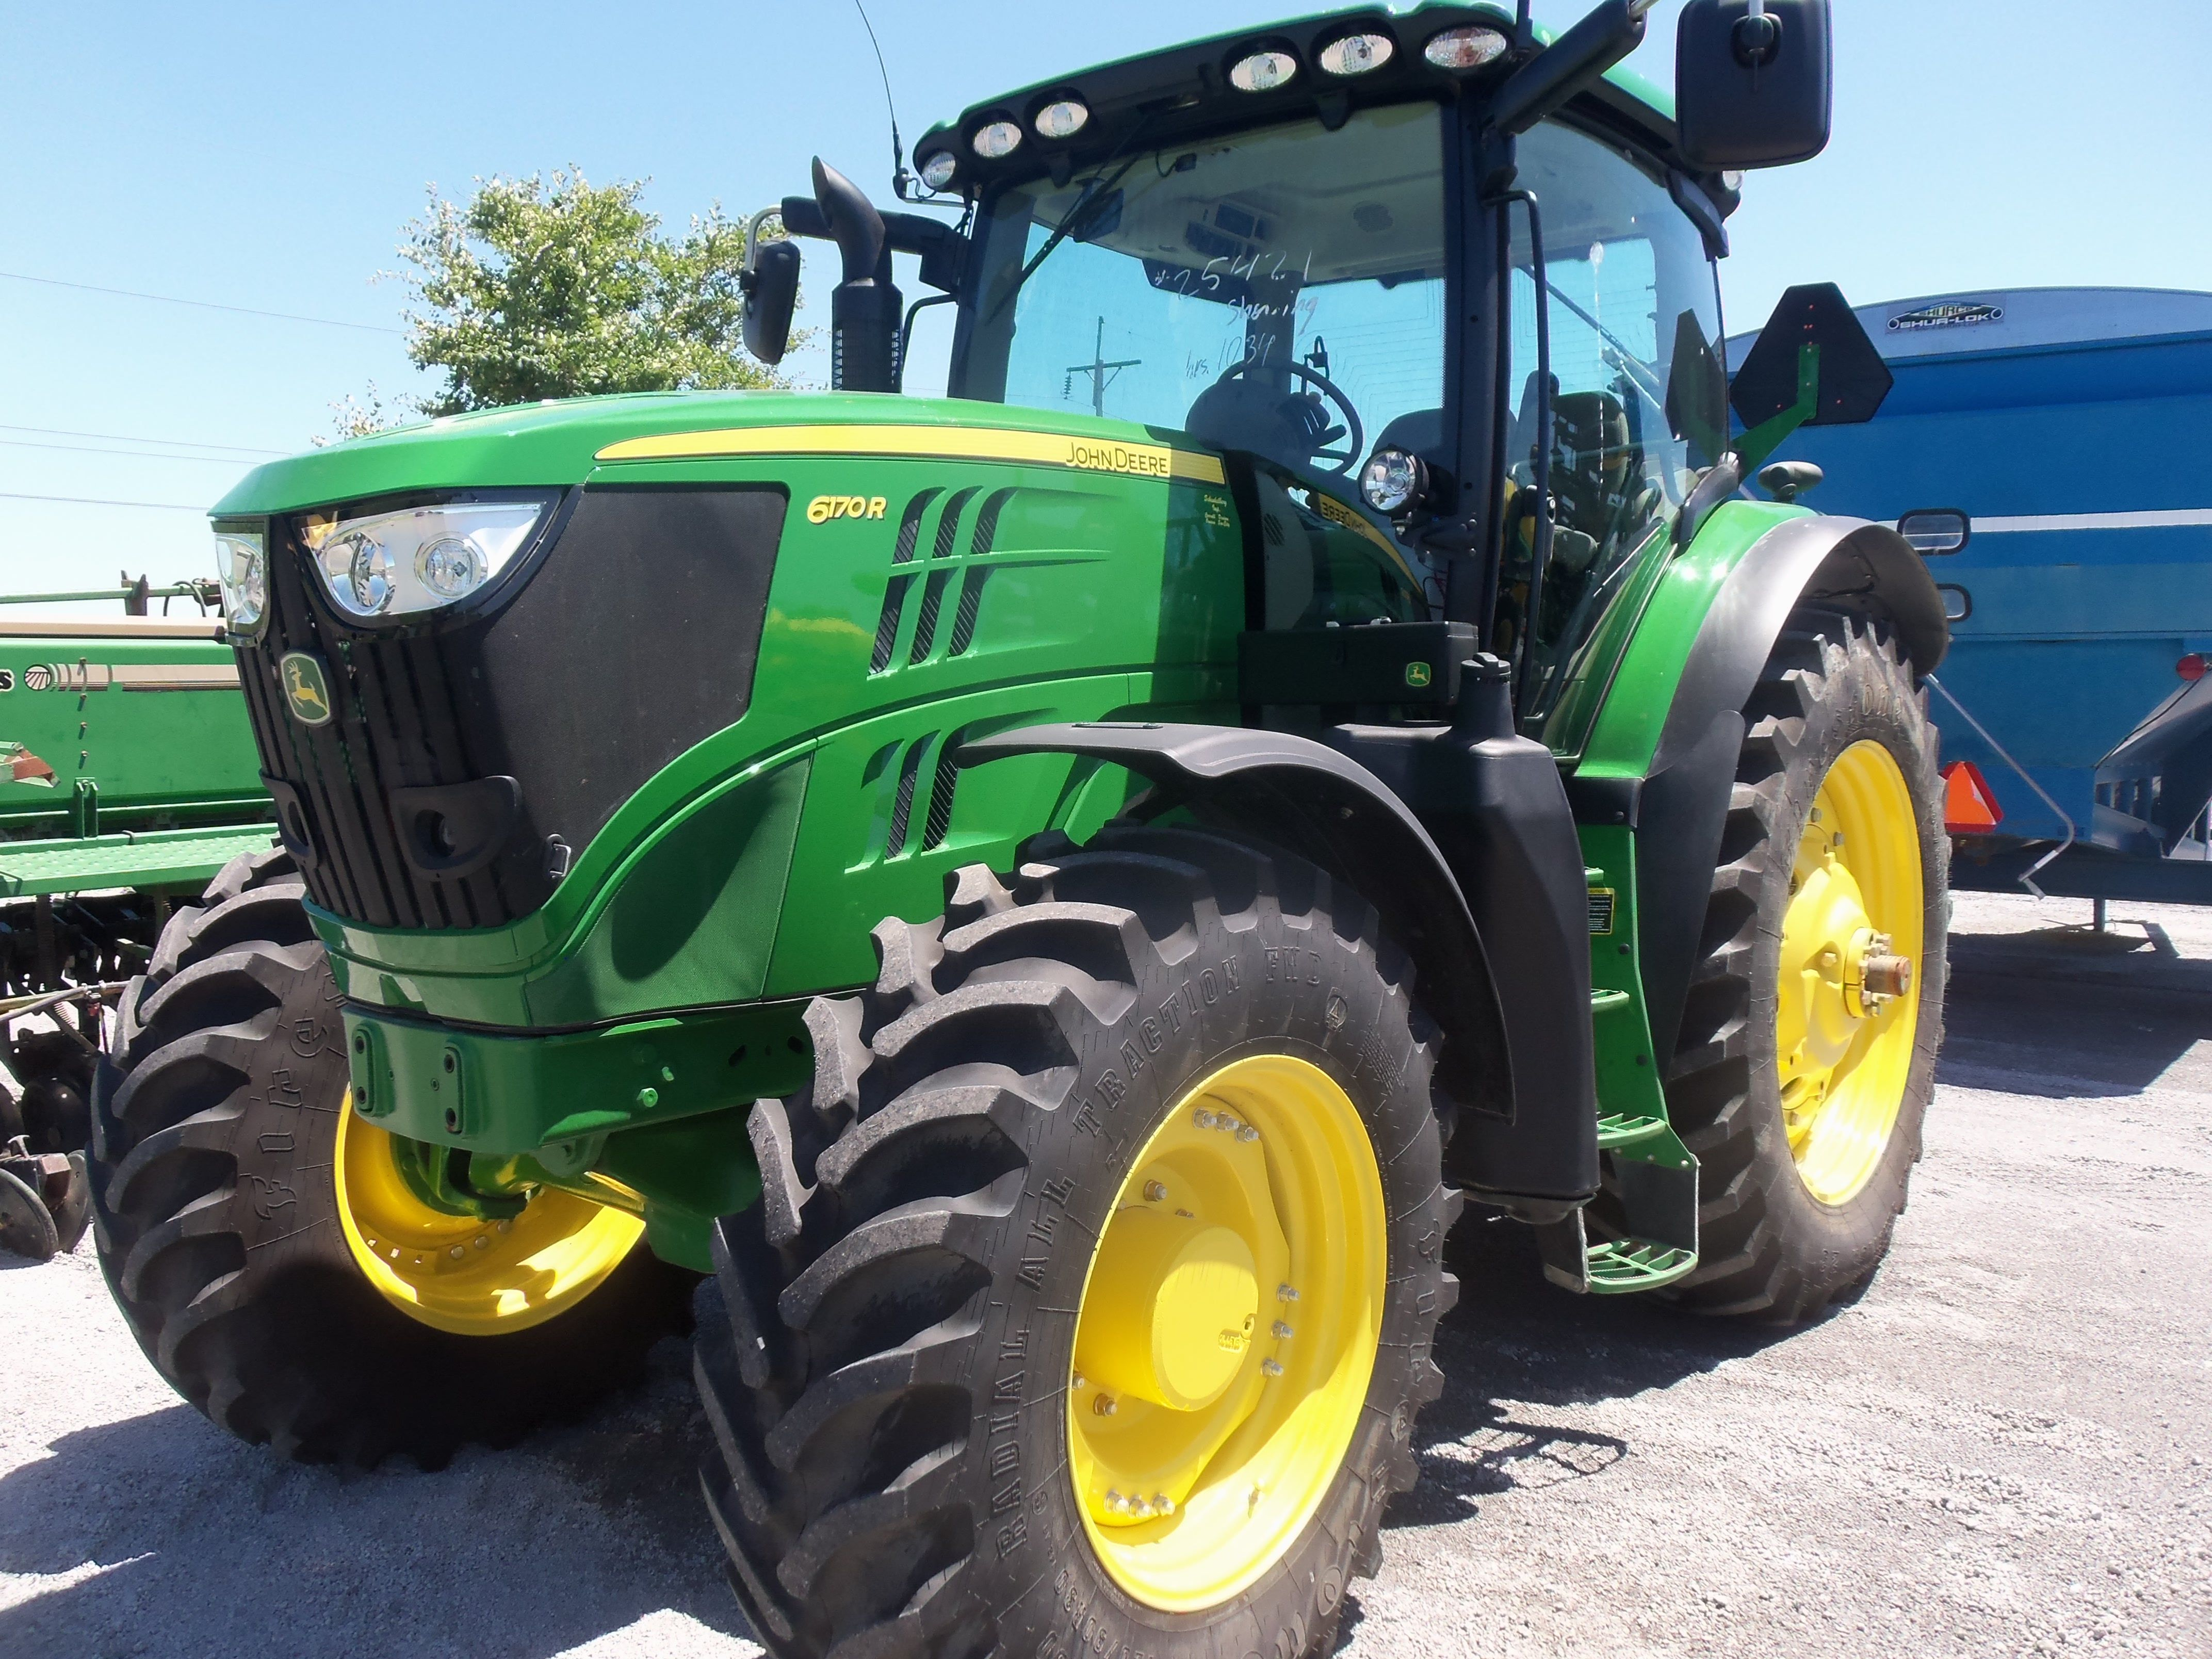 small resolution of john deere 6170r 187 max 170 engine 140 pto hp from a turbocharged 549 cid diesel 15 500 lbs 58 gallon fuel tank 119 inch wheelbase